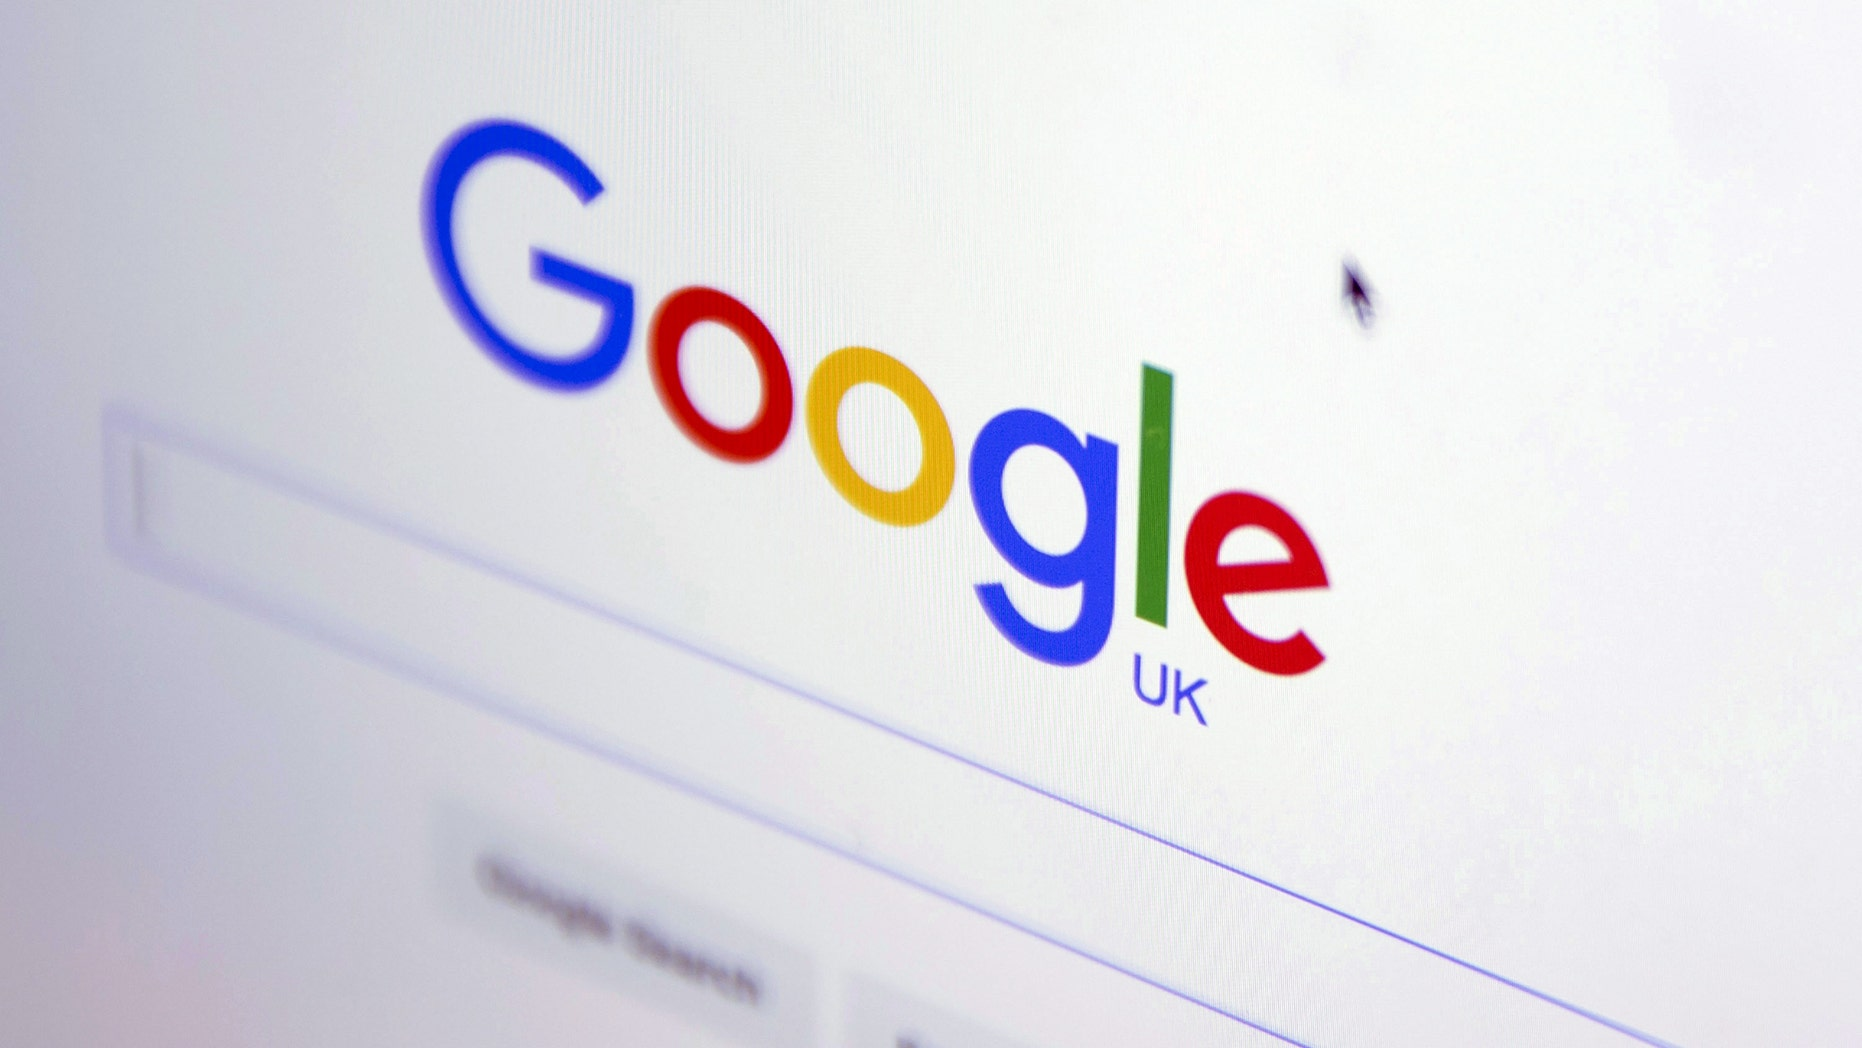 File photo - The Google internet homepage is displayed on a product at a store in London, Britain January 23, 2016. (REUTERS/Neil Hall)